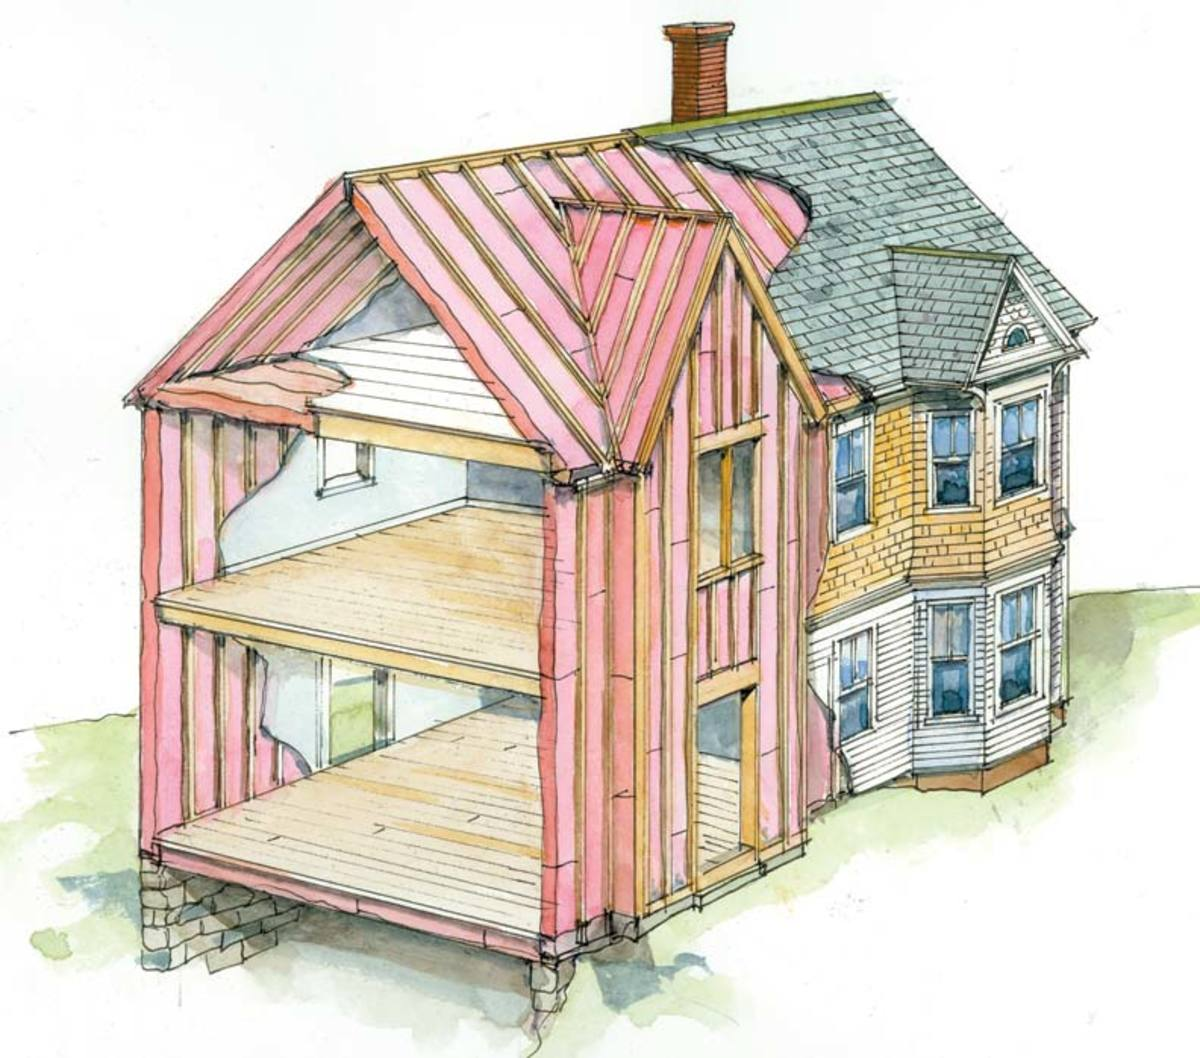 7 Insulation Tips to Save Money & Energy.